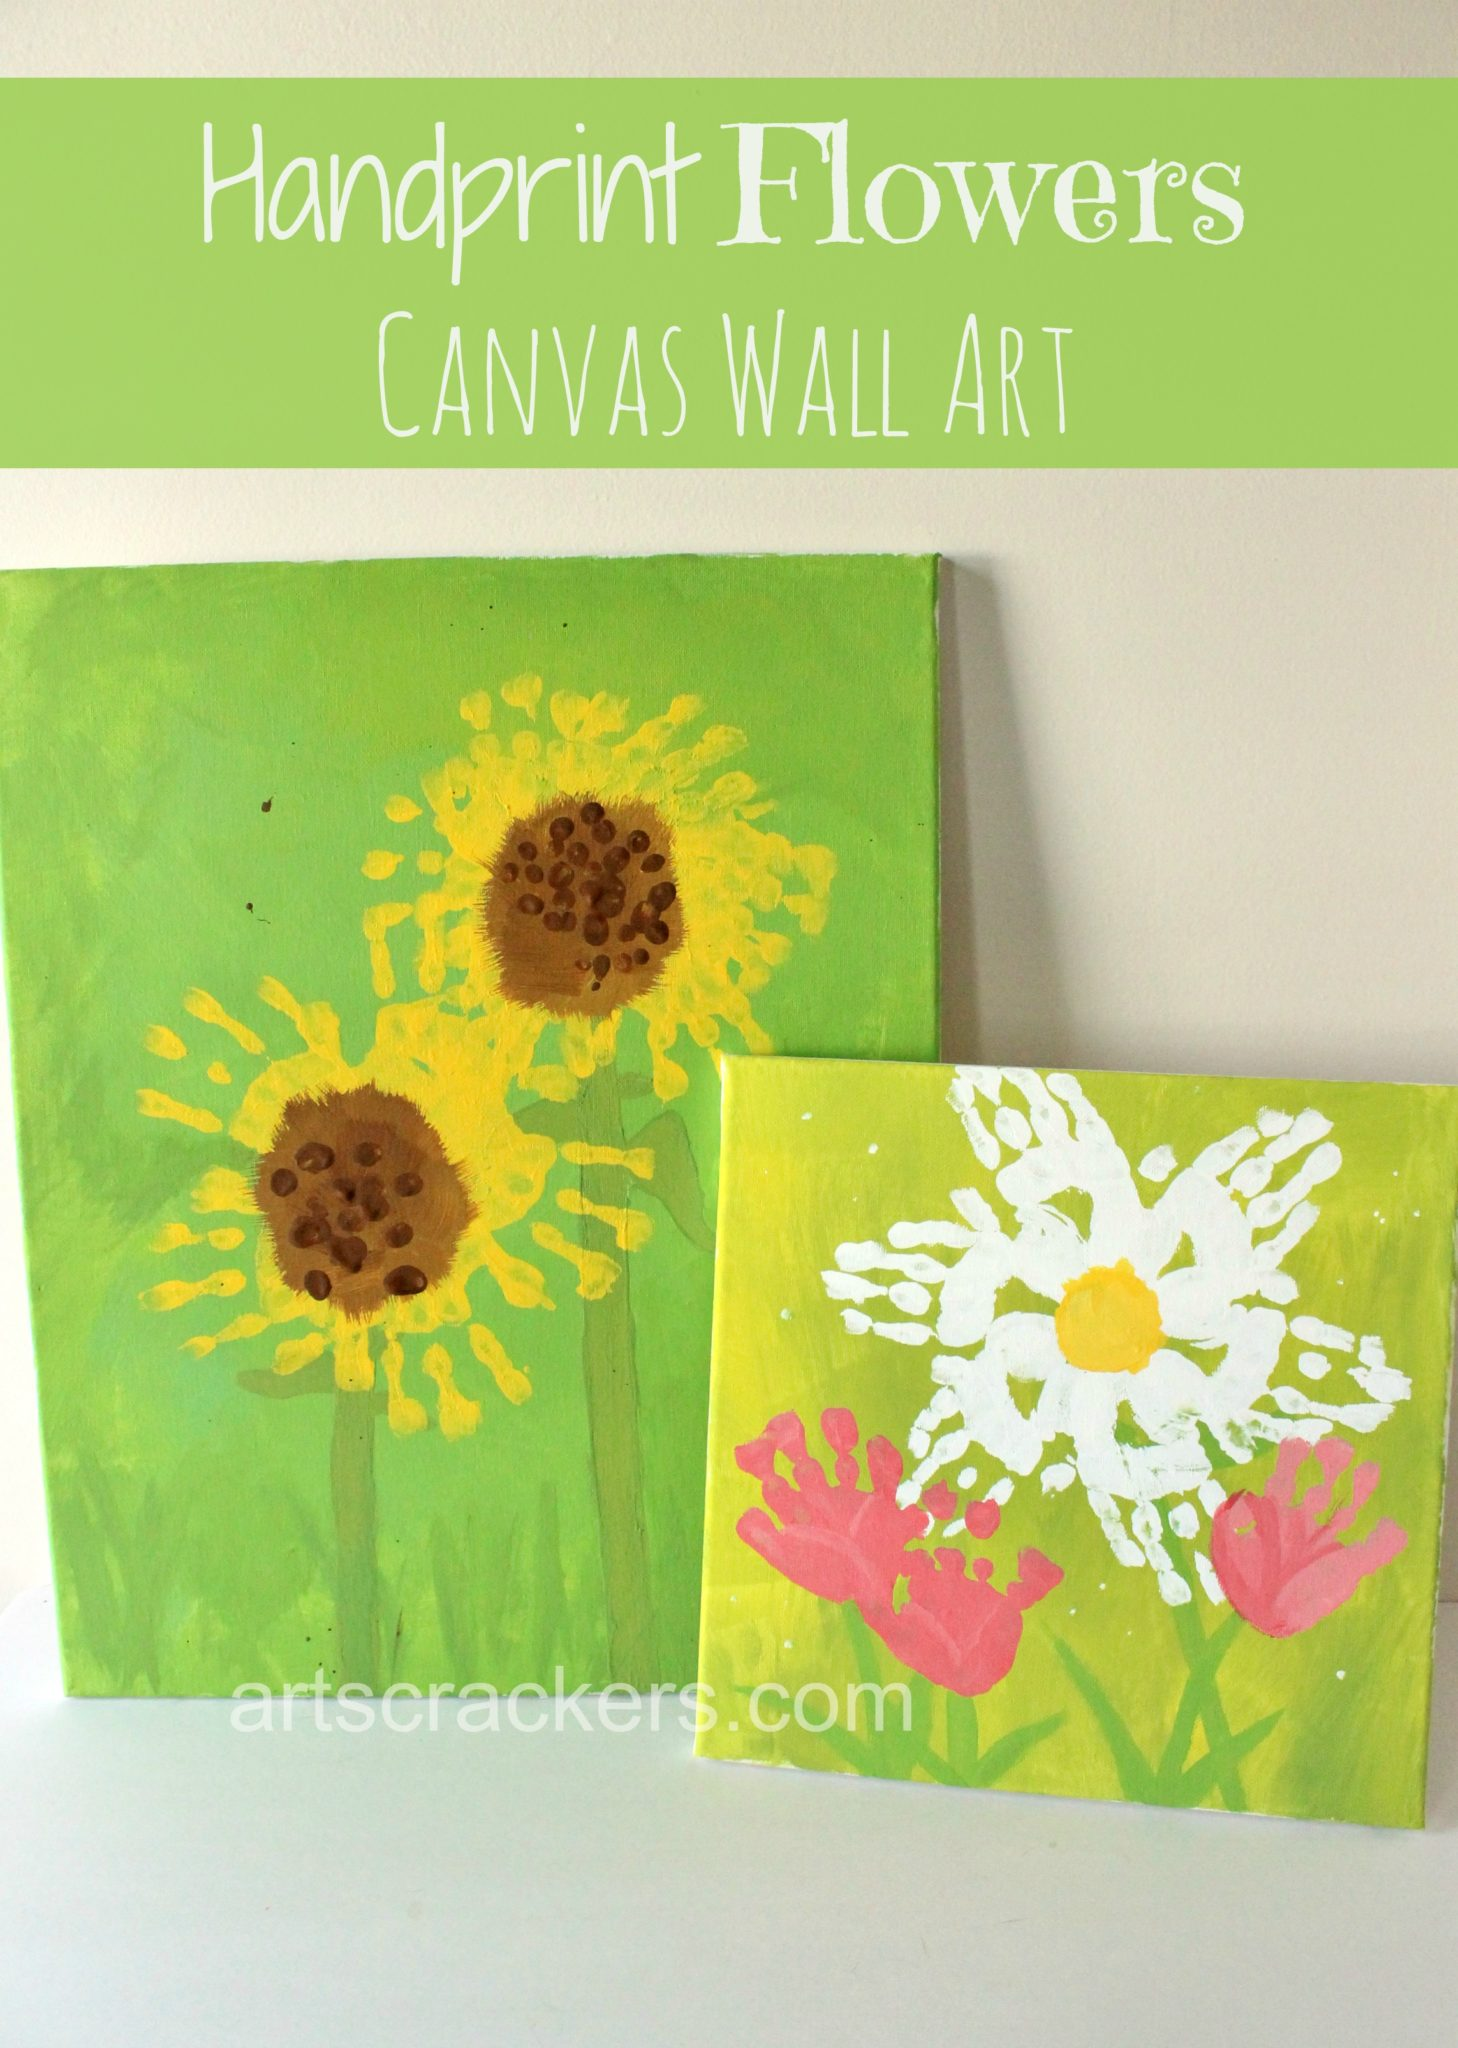 Handprint Flowers Canvas Wall Art. Click the picture to view the step-by-step tutorials.